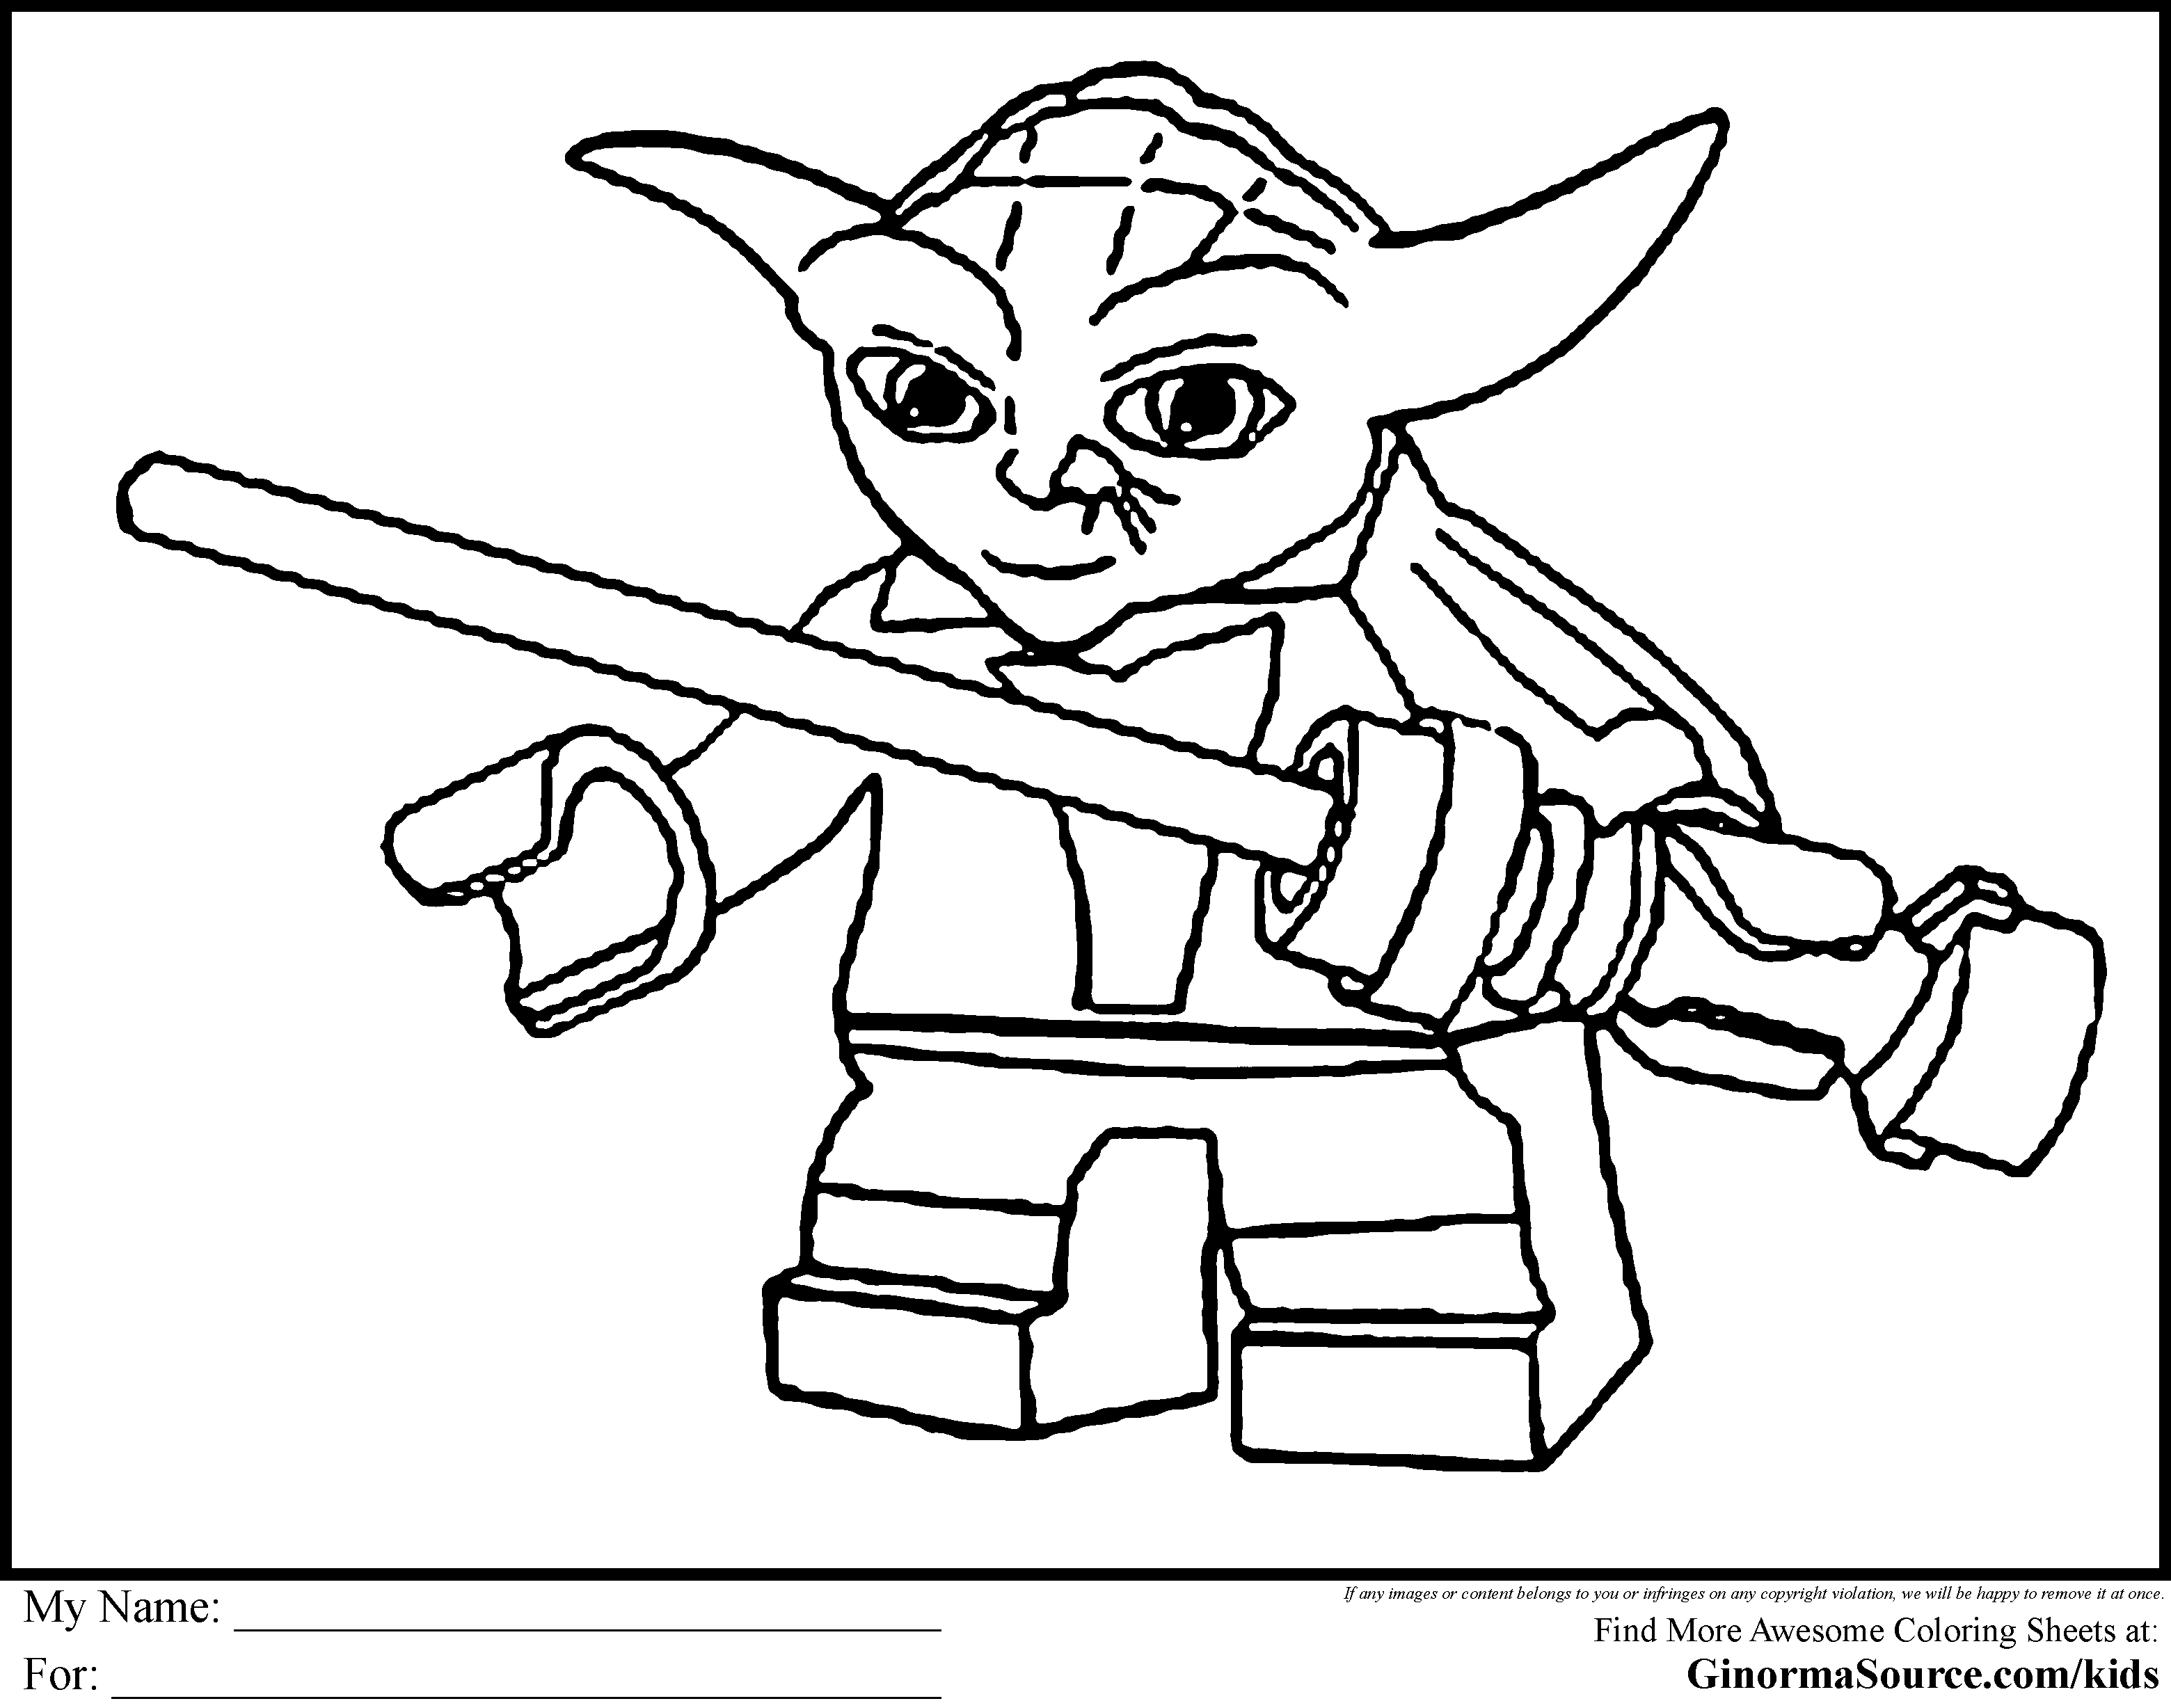 Coloriage Star War Colorier Les Enfants Marnfozine Com